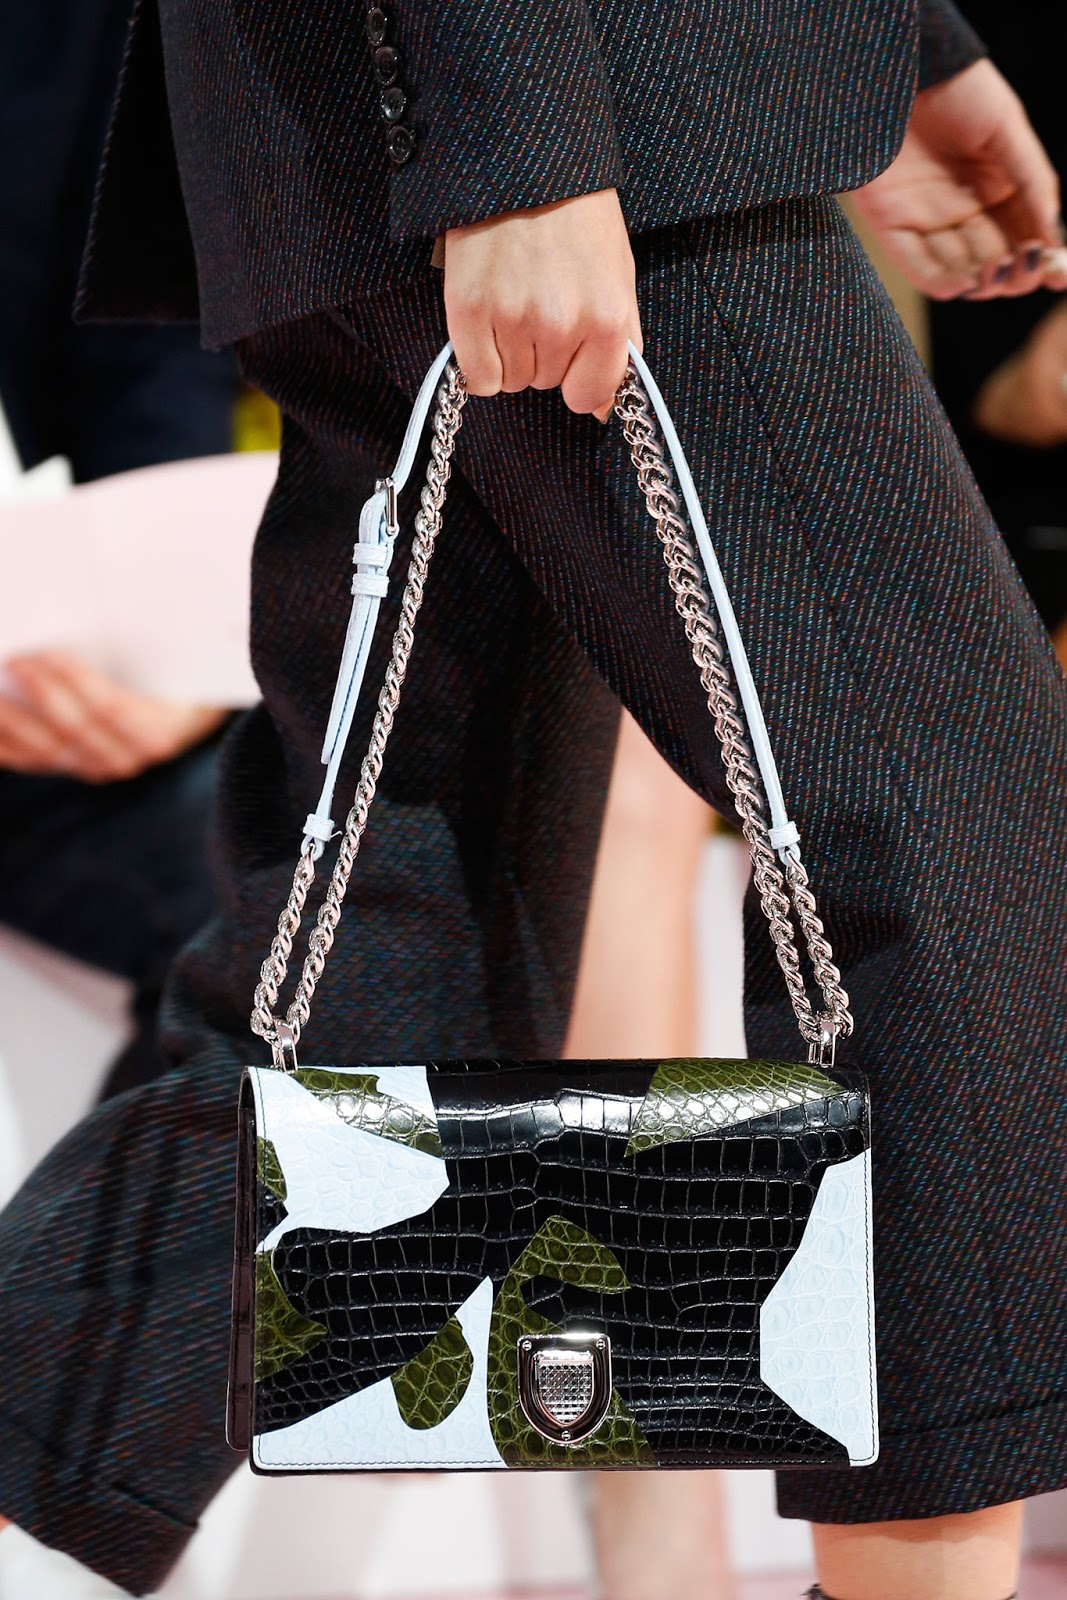 Fall 2015 accessories trend report / best bags / investment bags / crocodile accessories trend at Christian Dior Fall/Winter 2015 via fashionedbylove.co.uk, british fashion blog